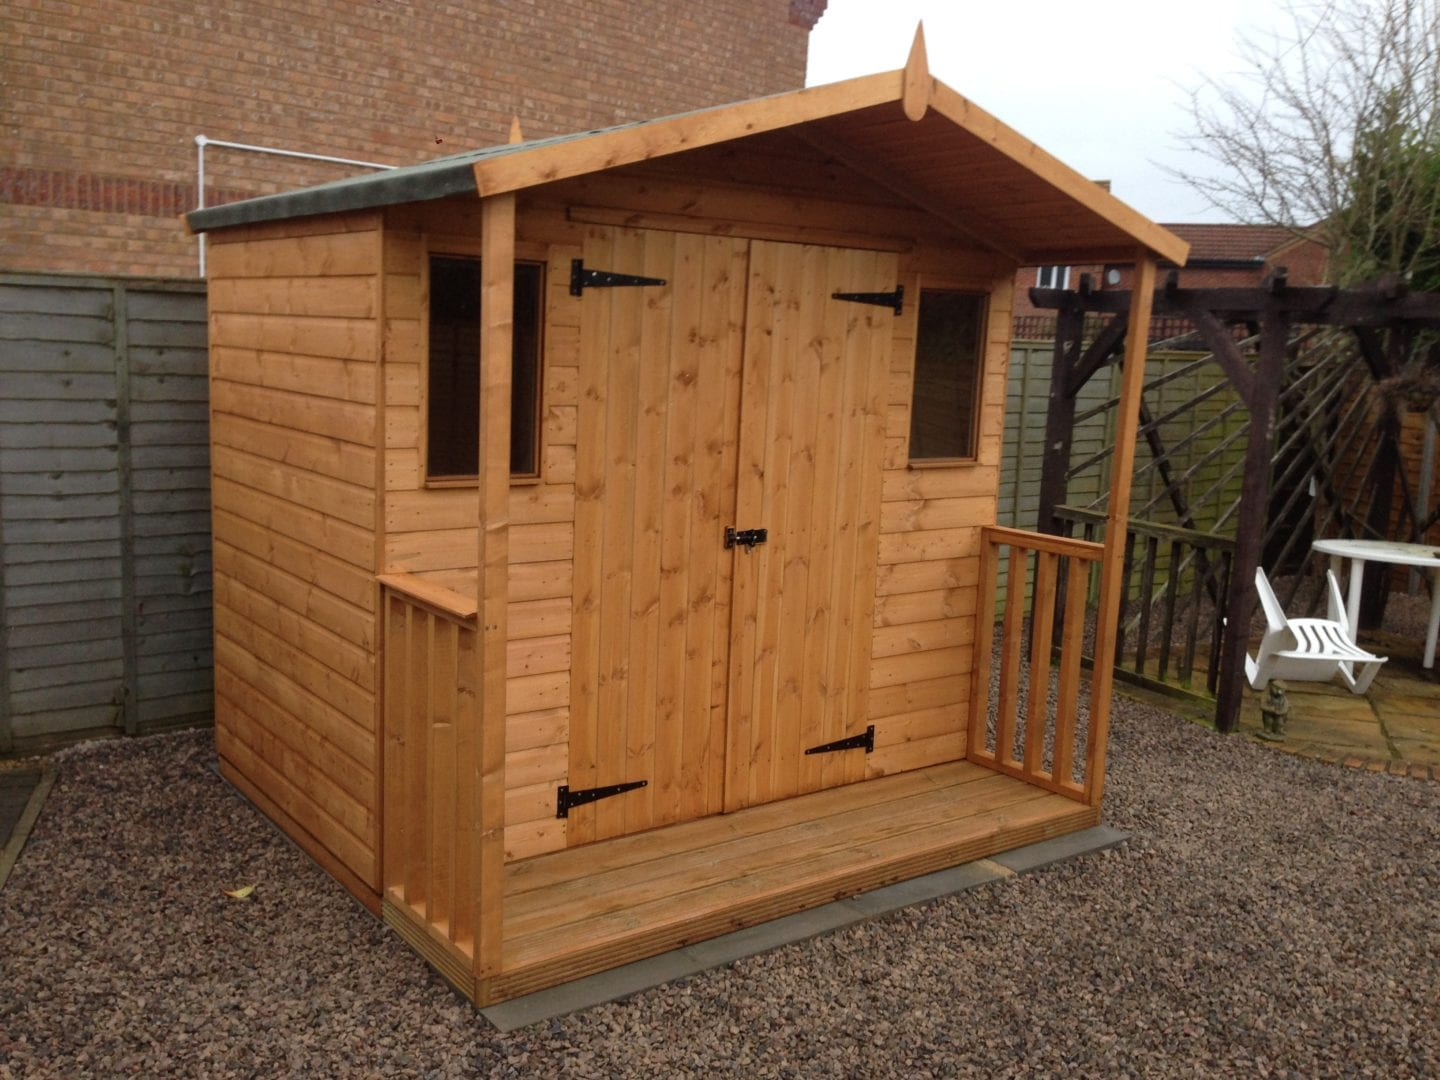 8x5 garden shed master sheds for Garden shed 8x5